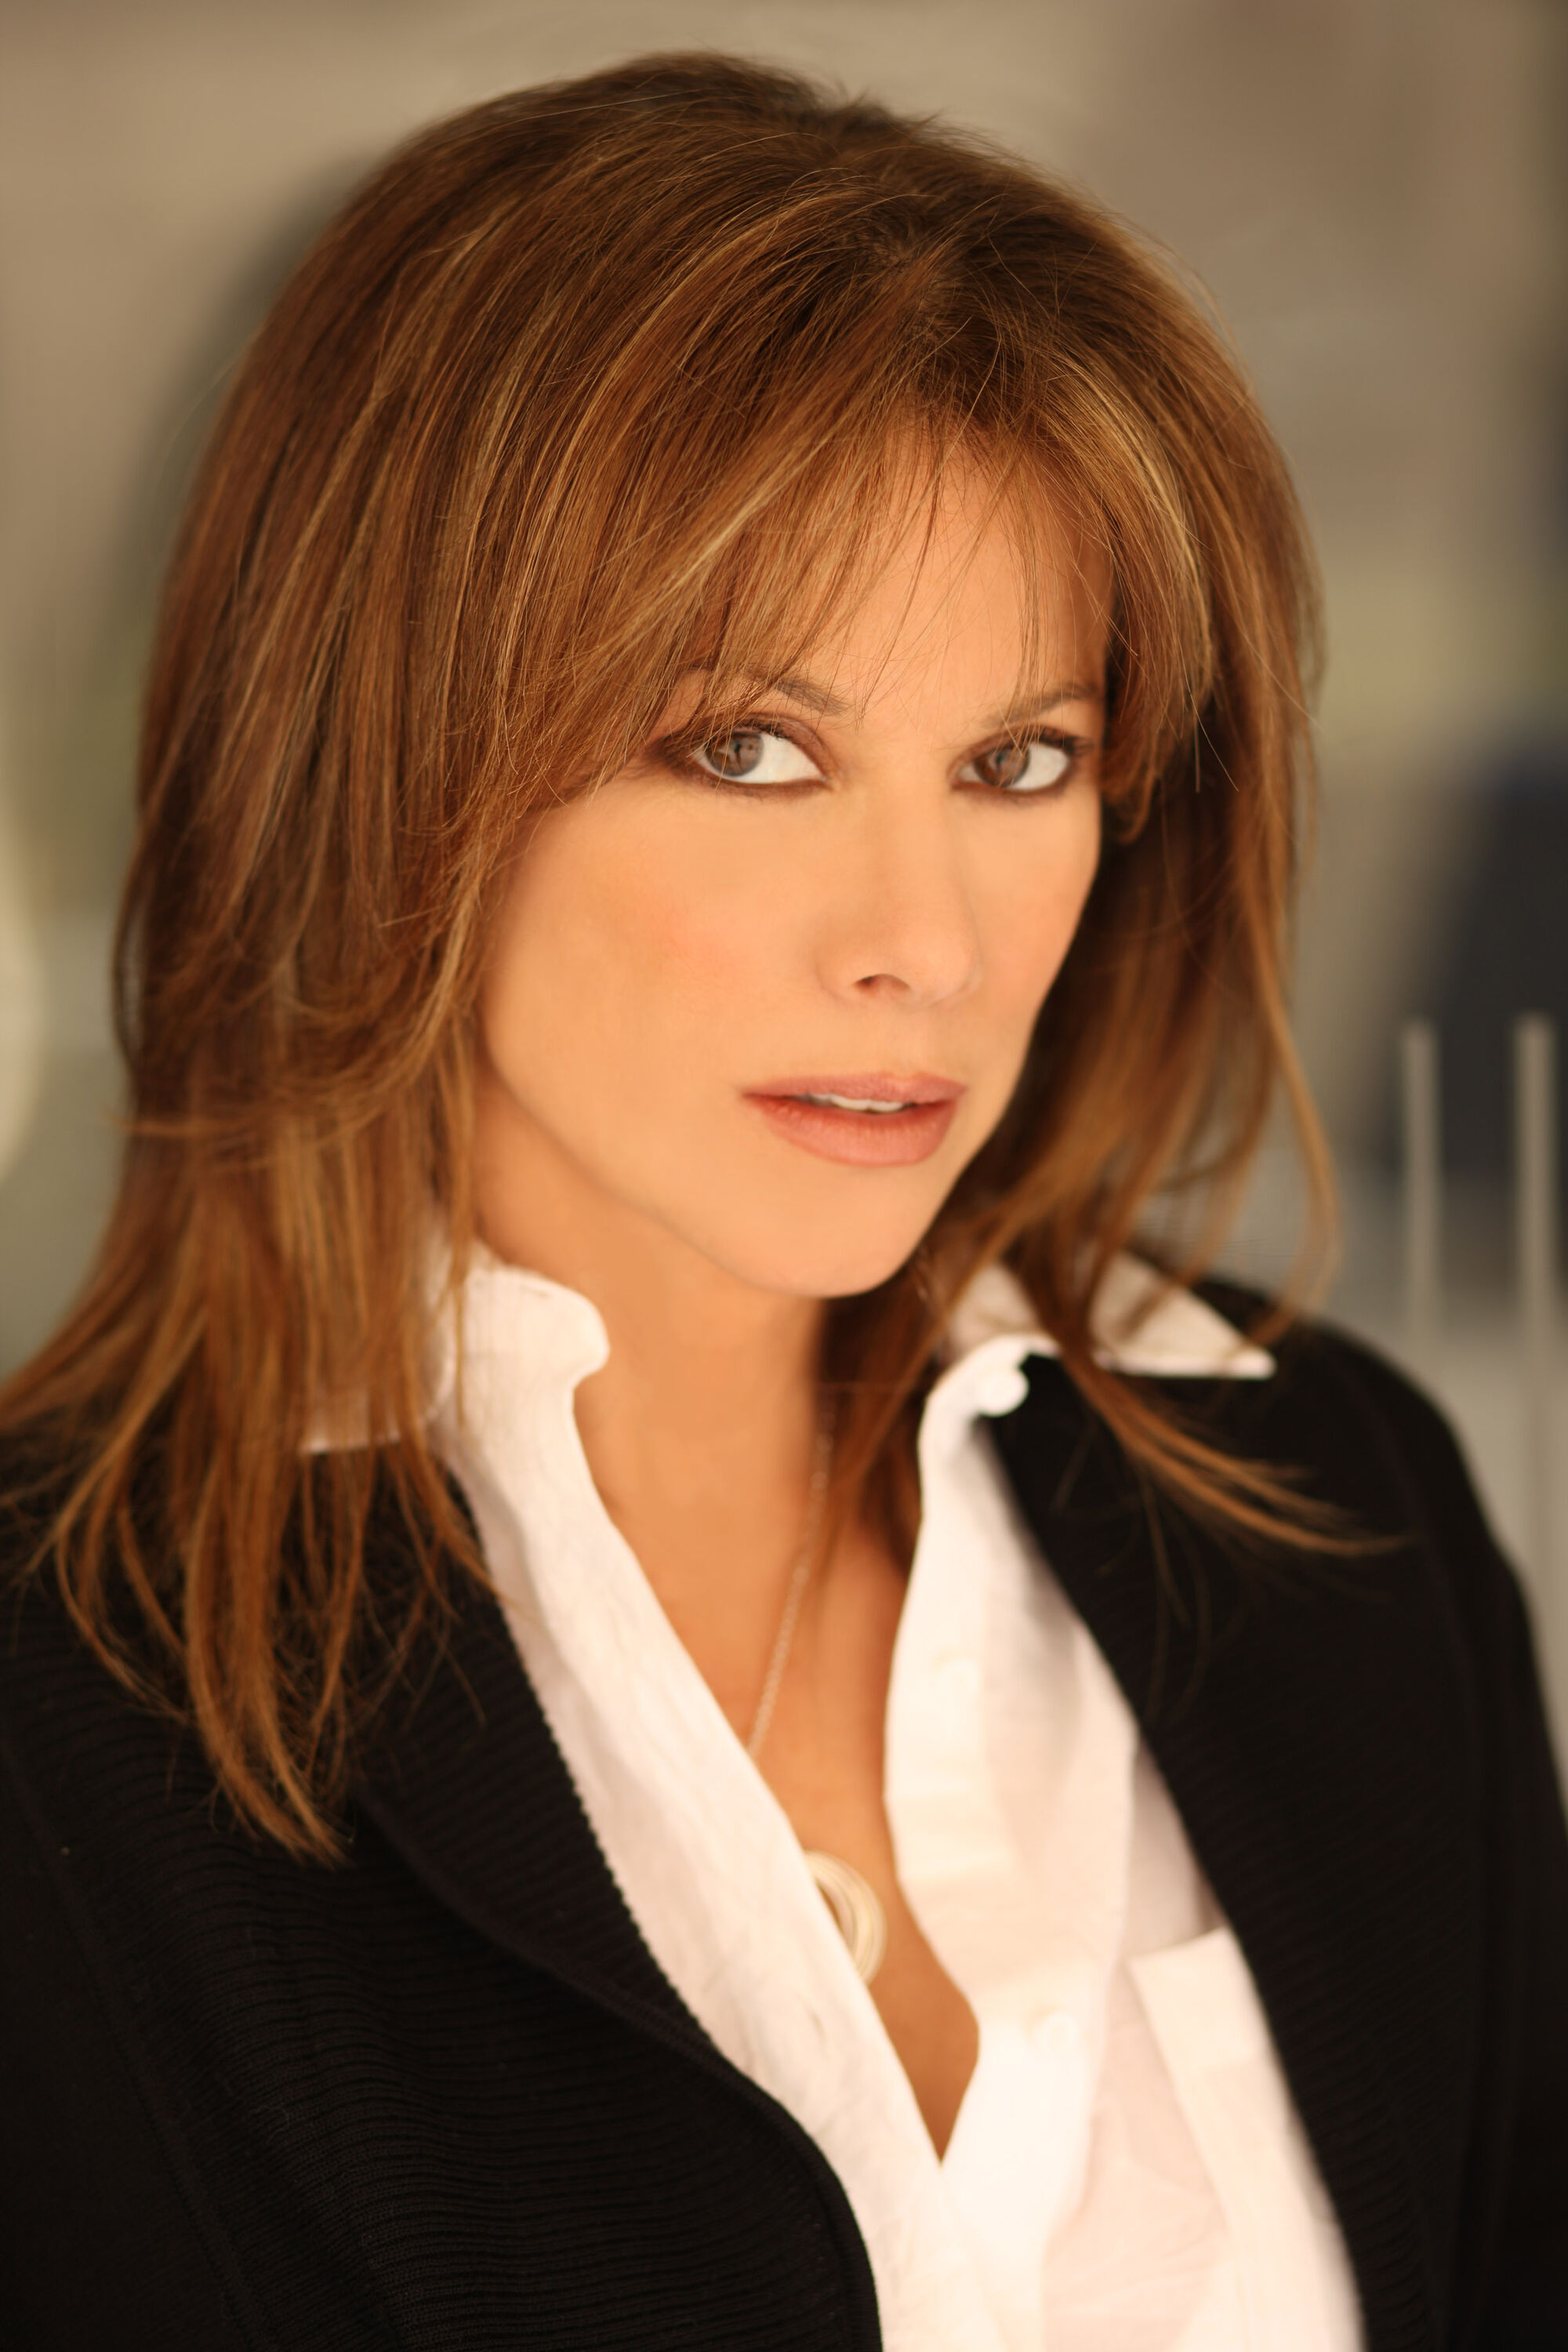 Nancy Lee Grahn nudes (82 photos) Cleavage, 2020, cleavage